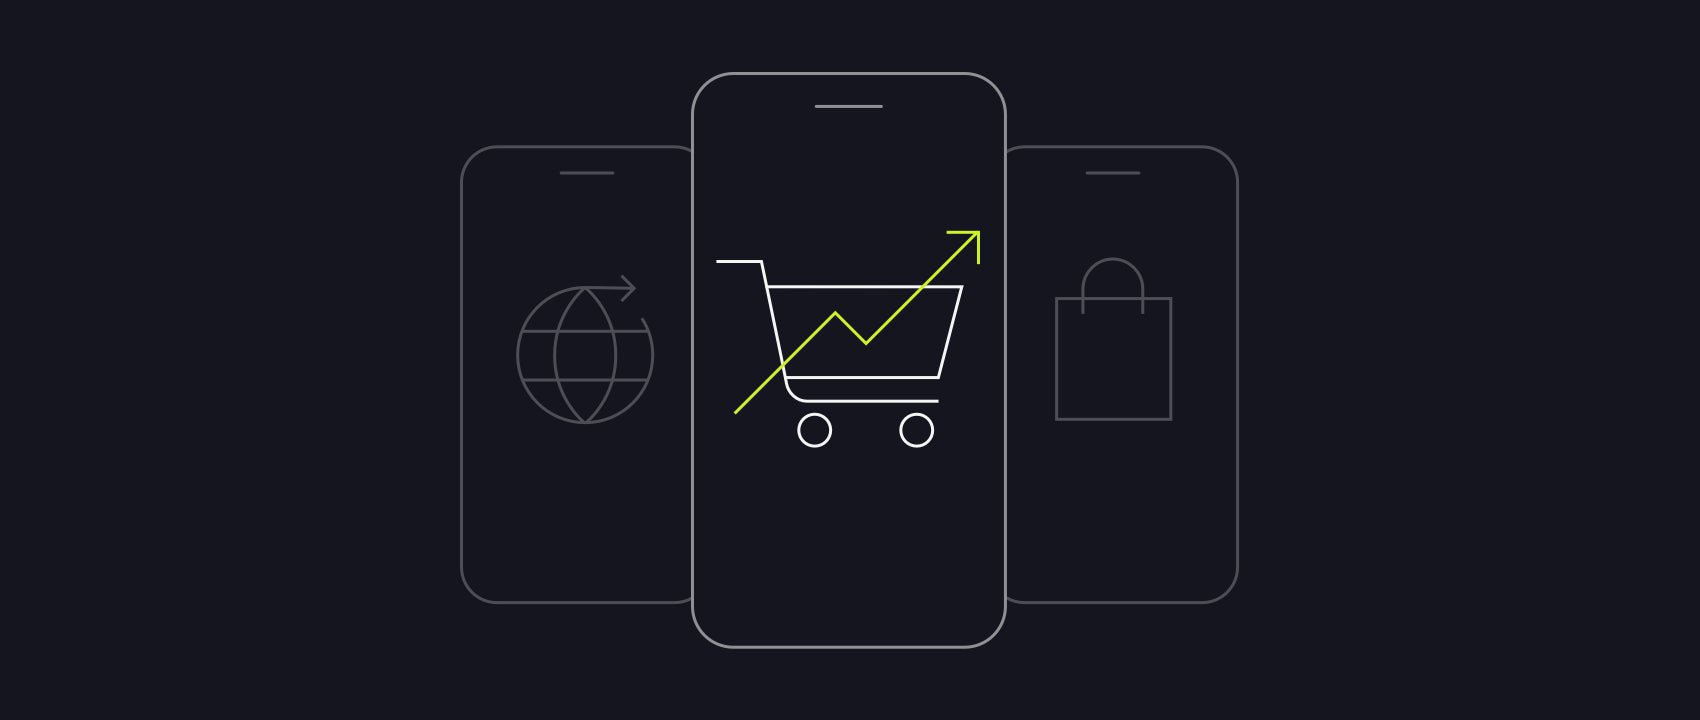 What Is the Future of Ecommerce? 10 Insights on the Evolution of an Industry